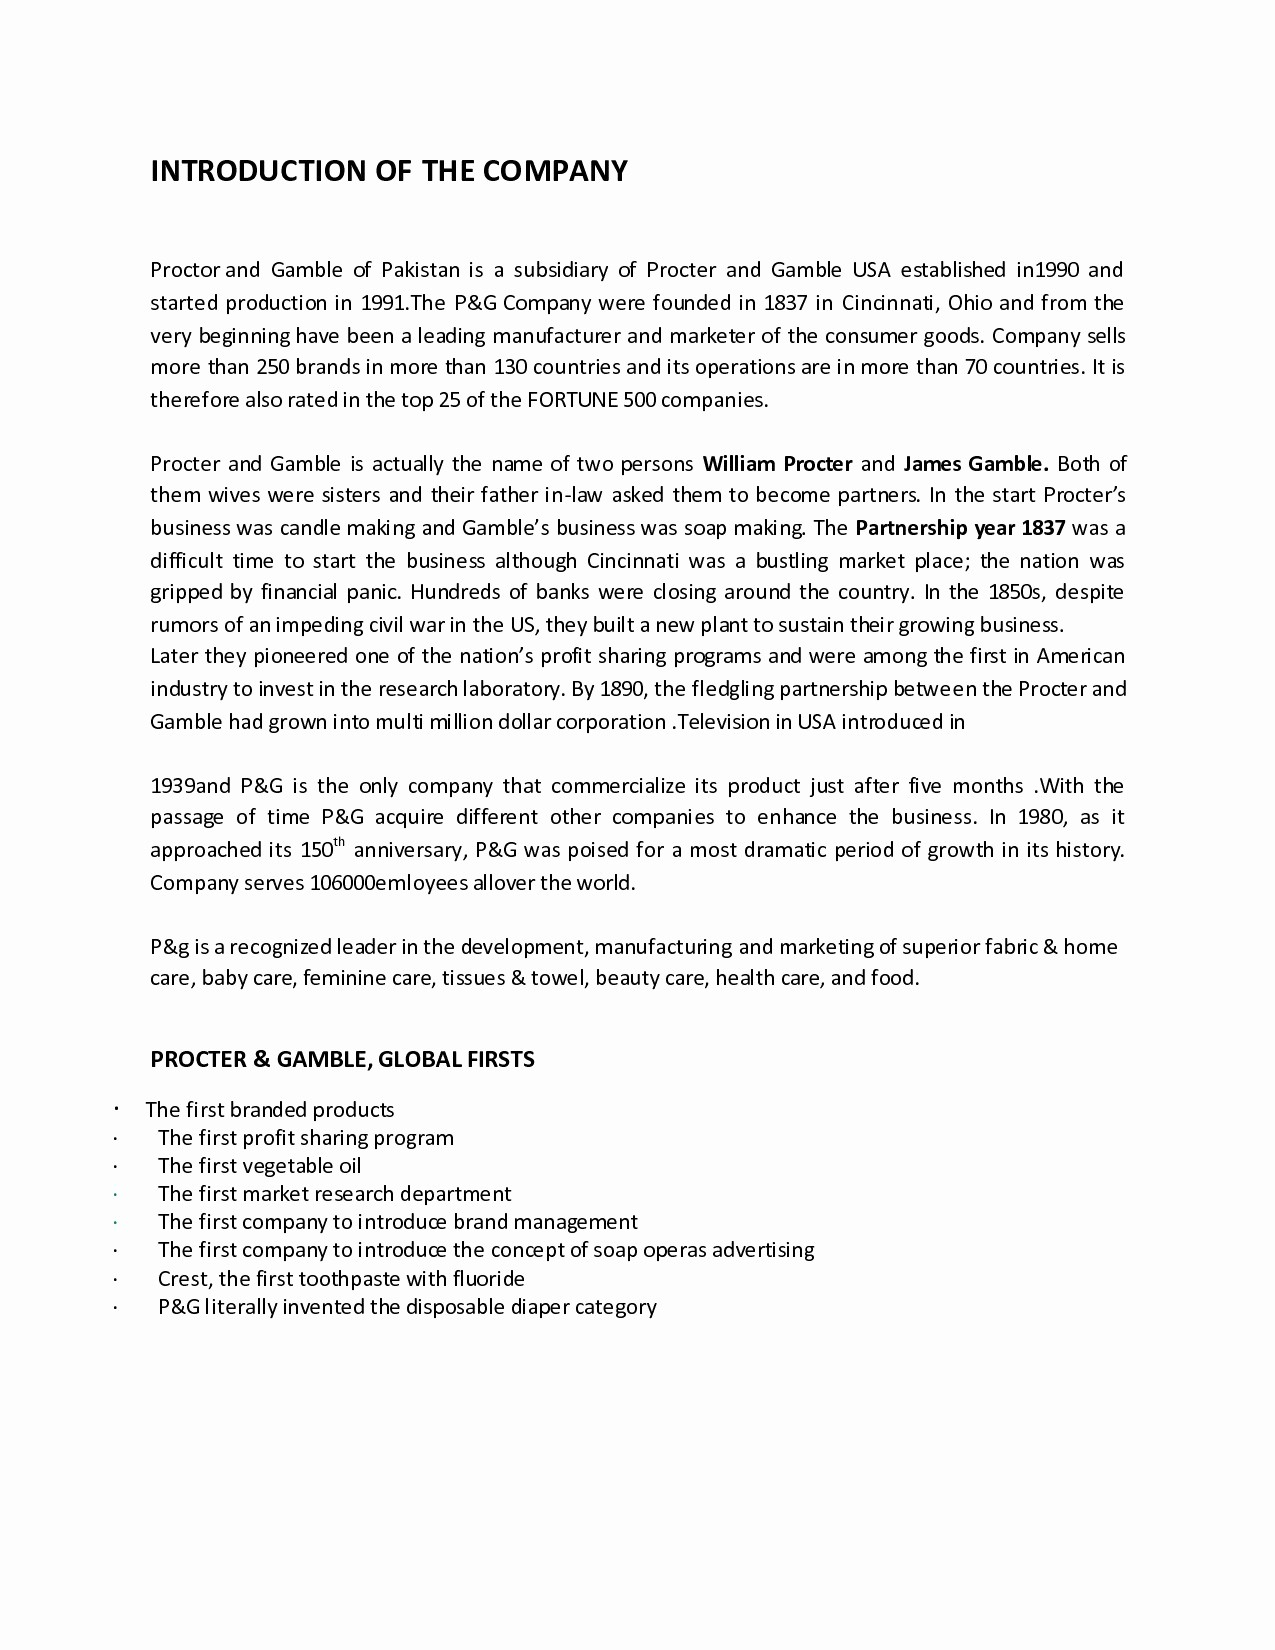 Business Plan Cover Letter Template - Sample Email Cover Letter for Business Proposal